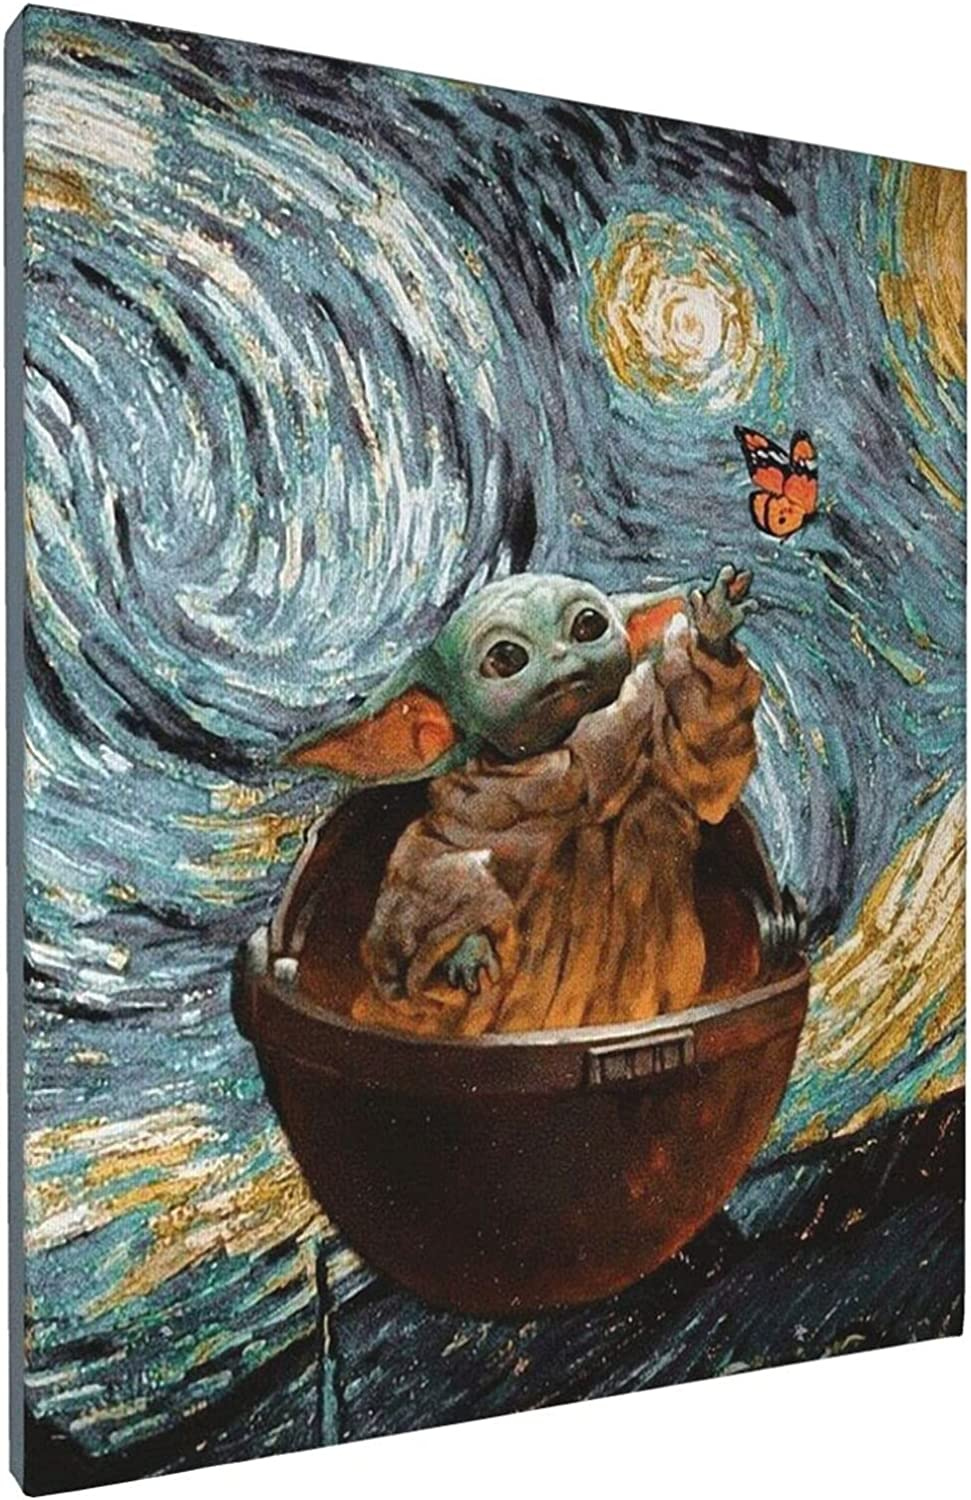 NAOINGEI Baby Yoda Poster Painting Wall Art Picture Canvas Prints For Bedroom Living Room Decor Birthday Gift Unframed For Boys And Girls